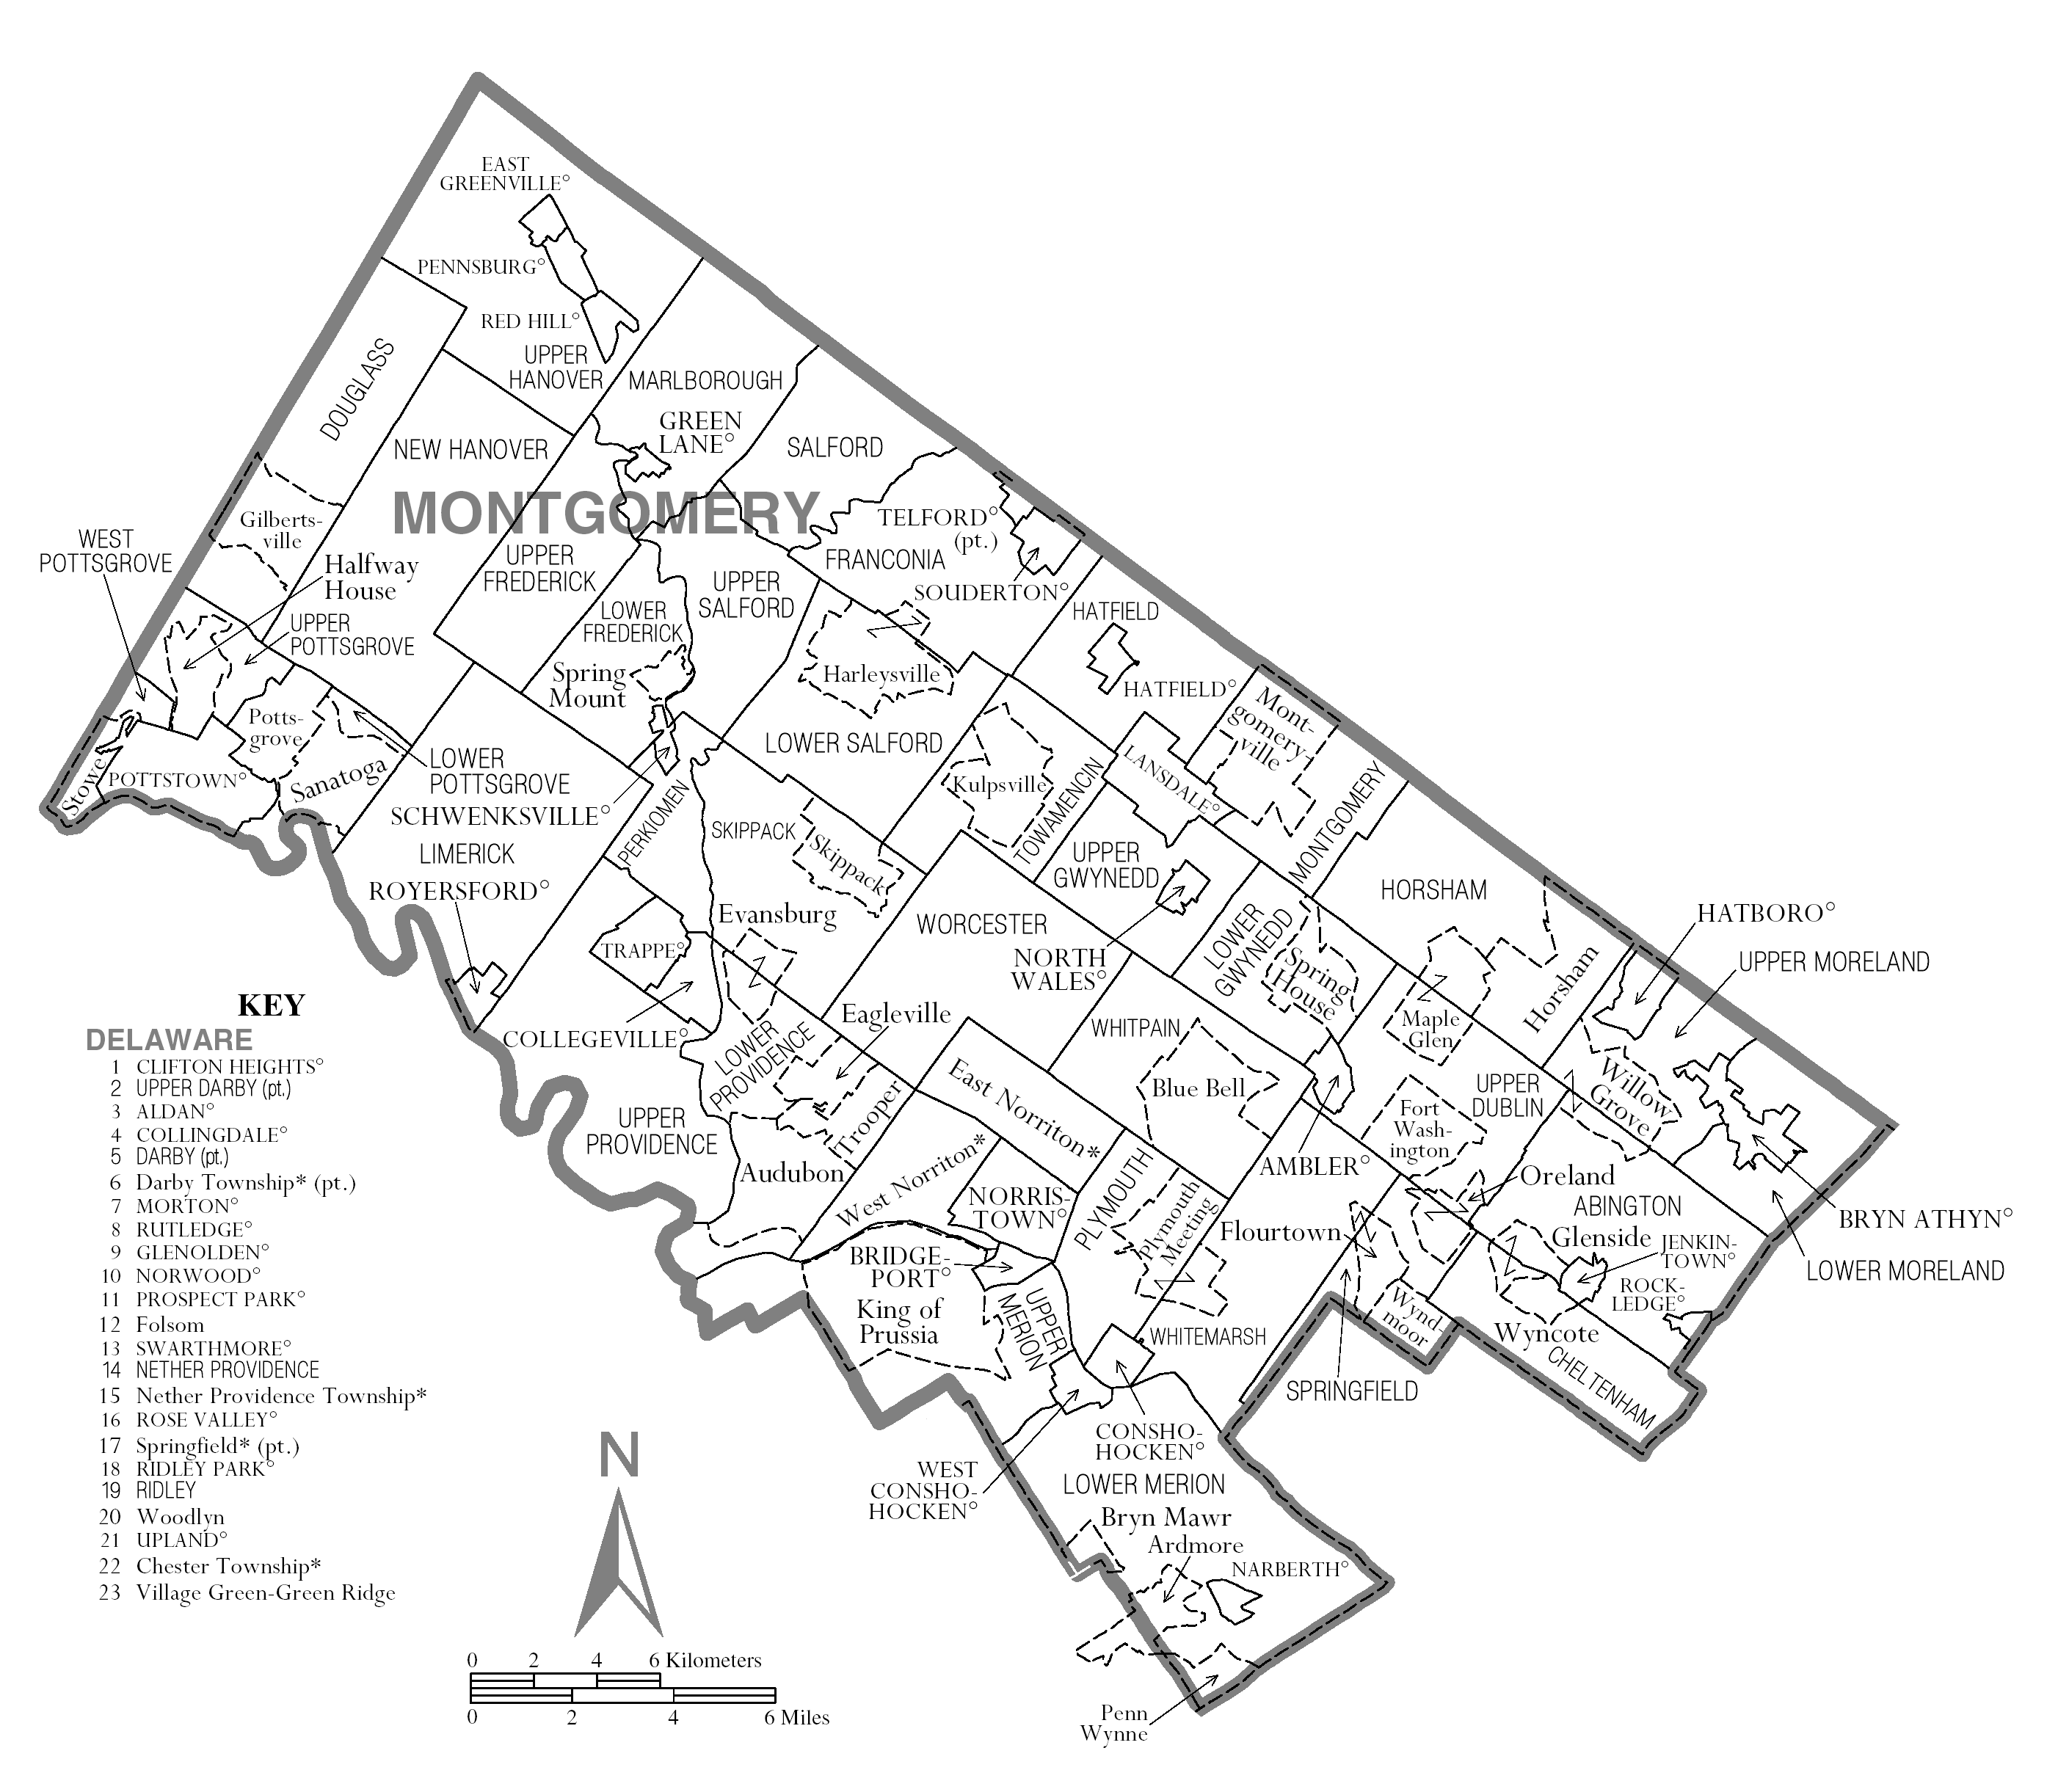 Montgomery Pa County Property Search